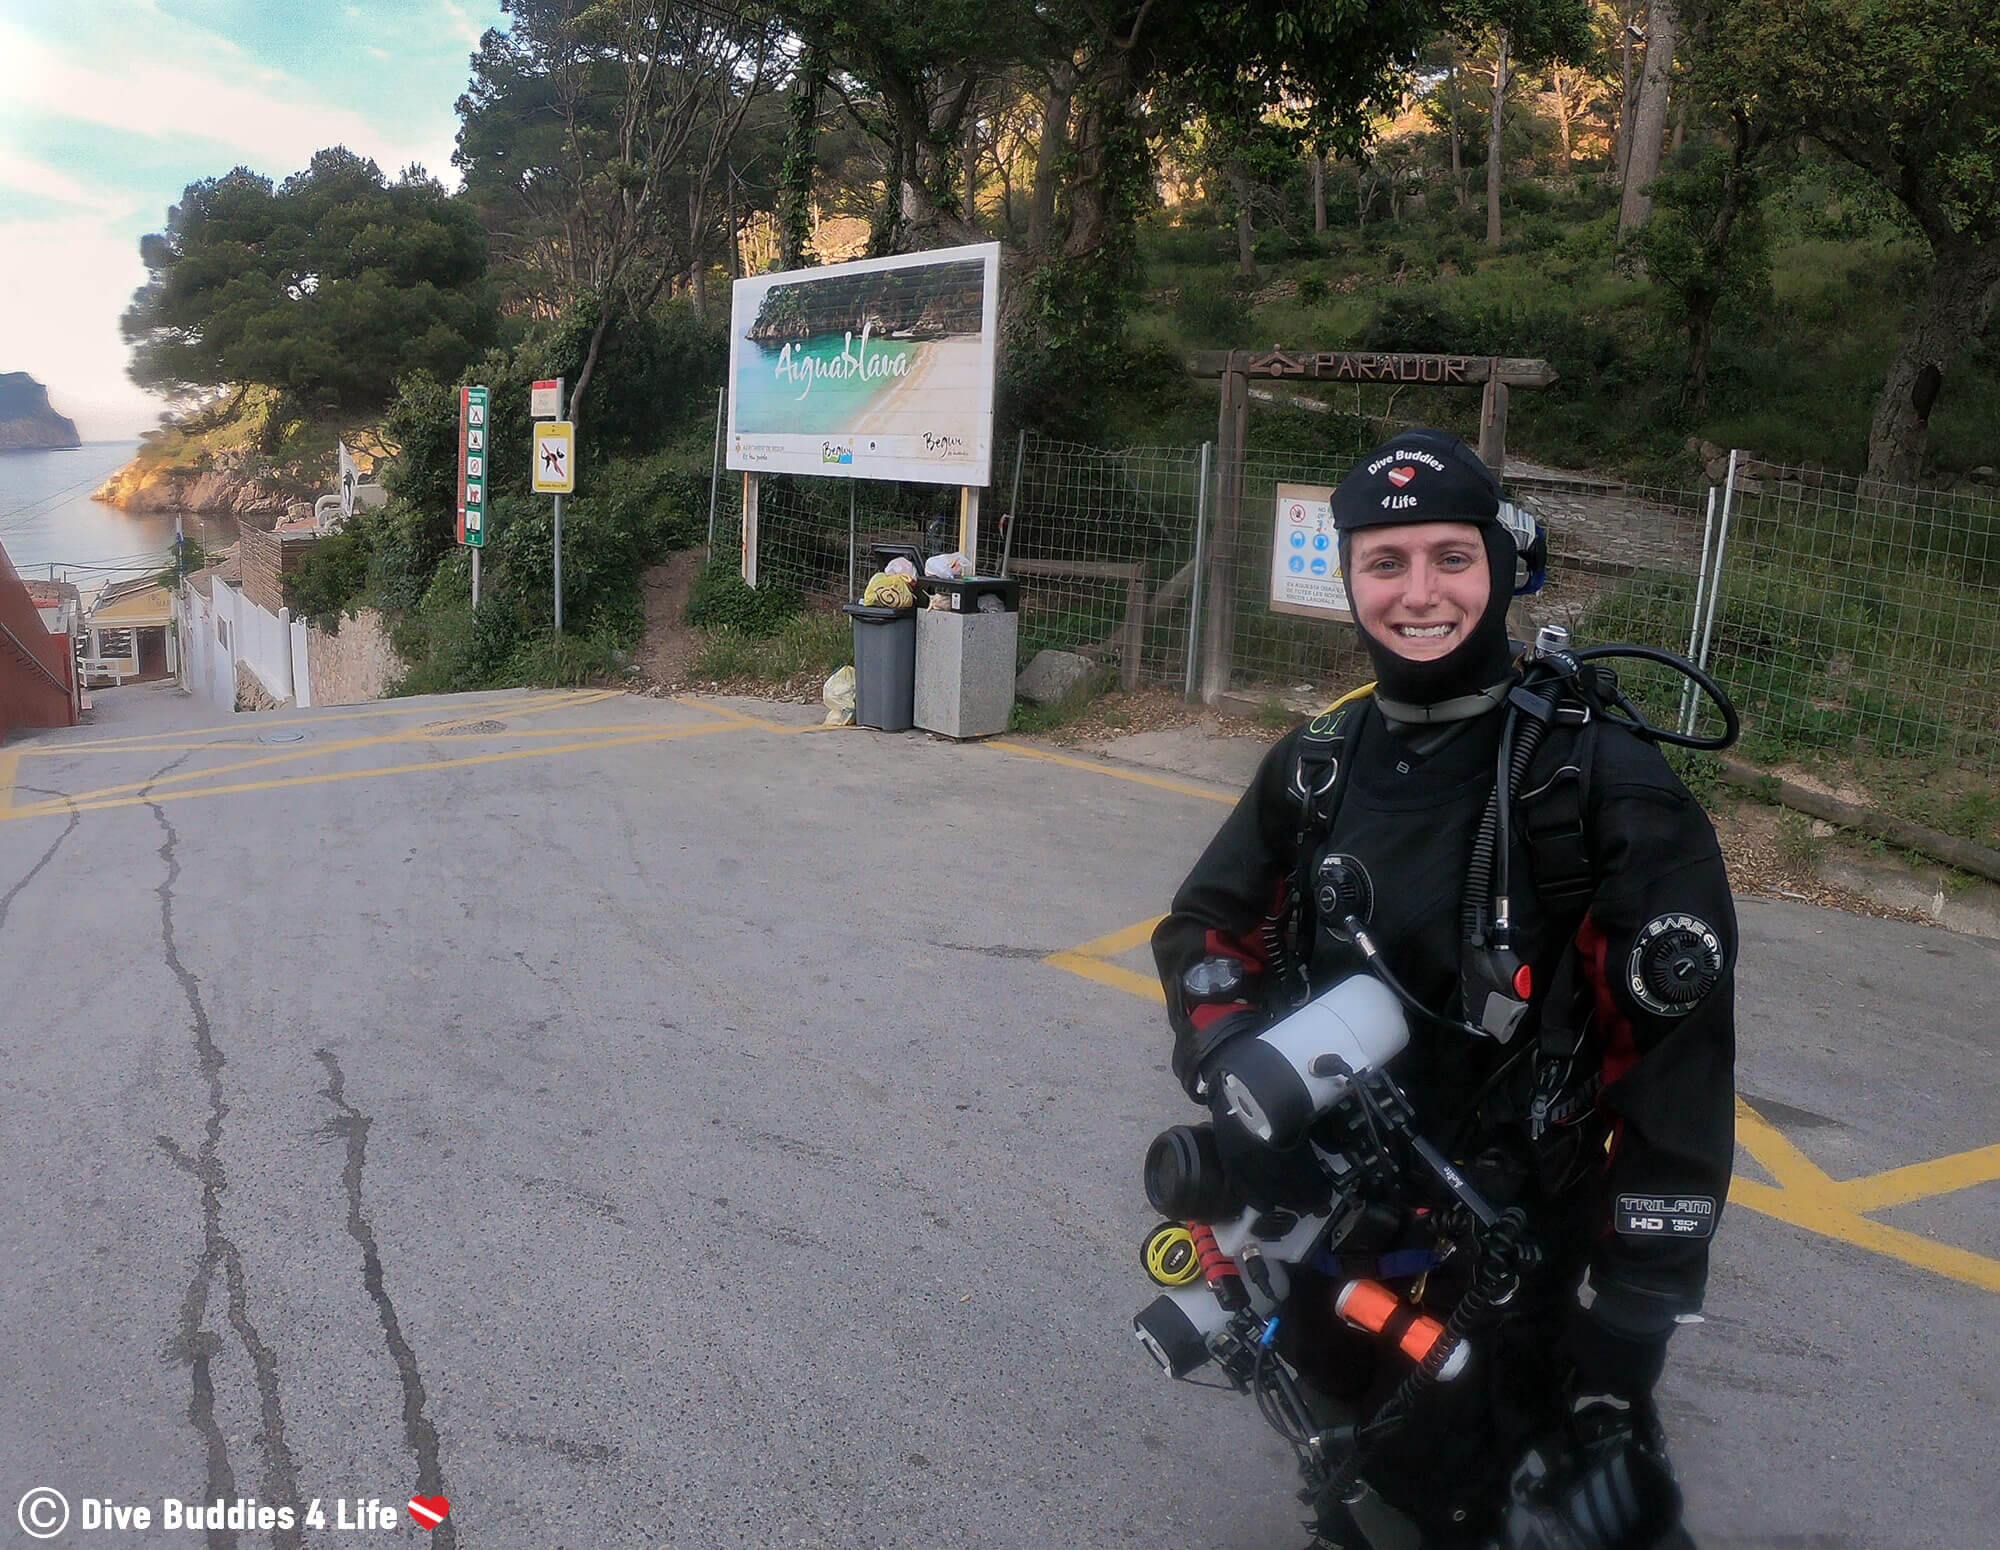 Ali Getting Ready To Shore Dive From Aiguablava Beach In Spain, Europe